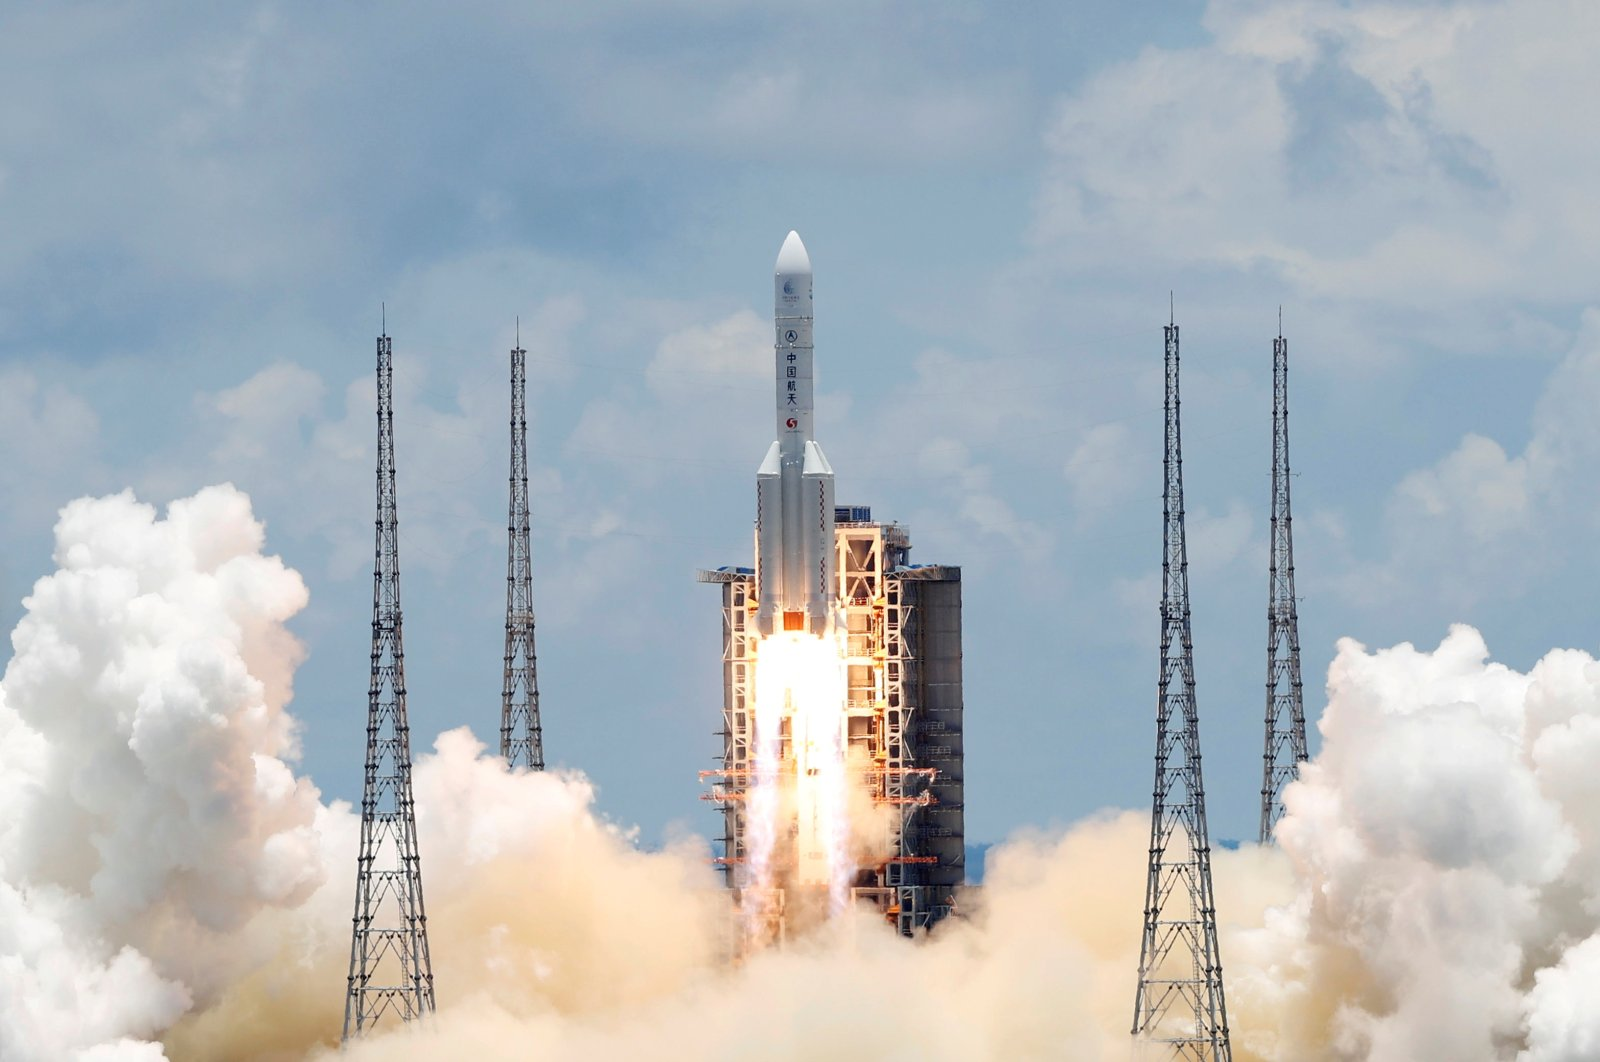 The Long March 5 Y-4 rocket, carrying an unmanned Mars probe of the Tianwen-1 mission, takes off from Wenchang Space Launch Center in Wenchang, Hainan Province, China, July 23, 2020. (Reuters Photo)